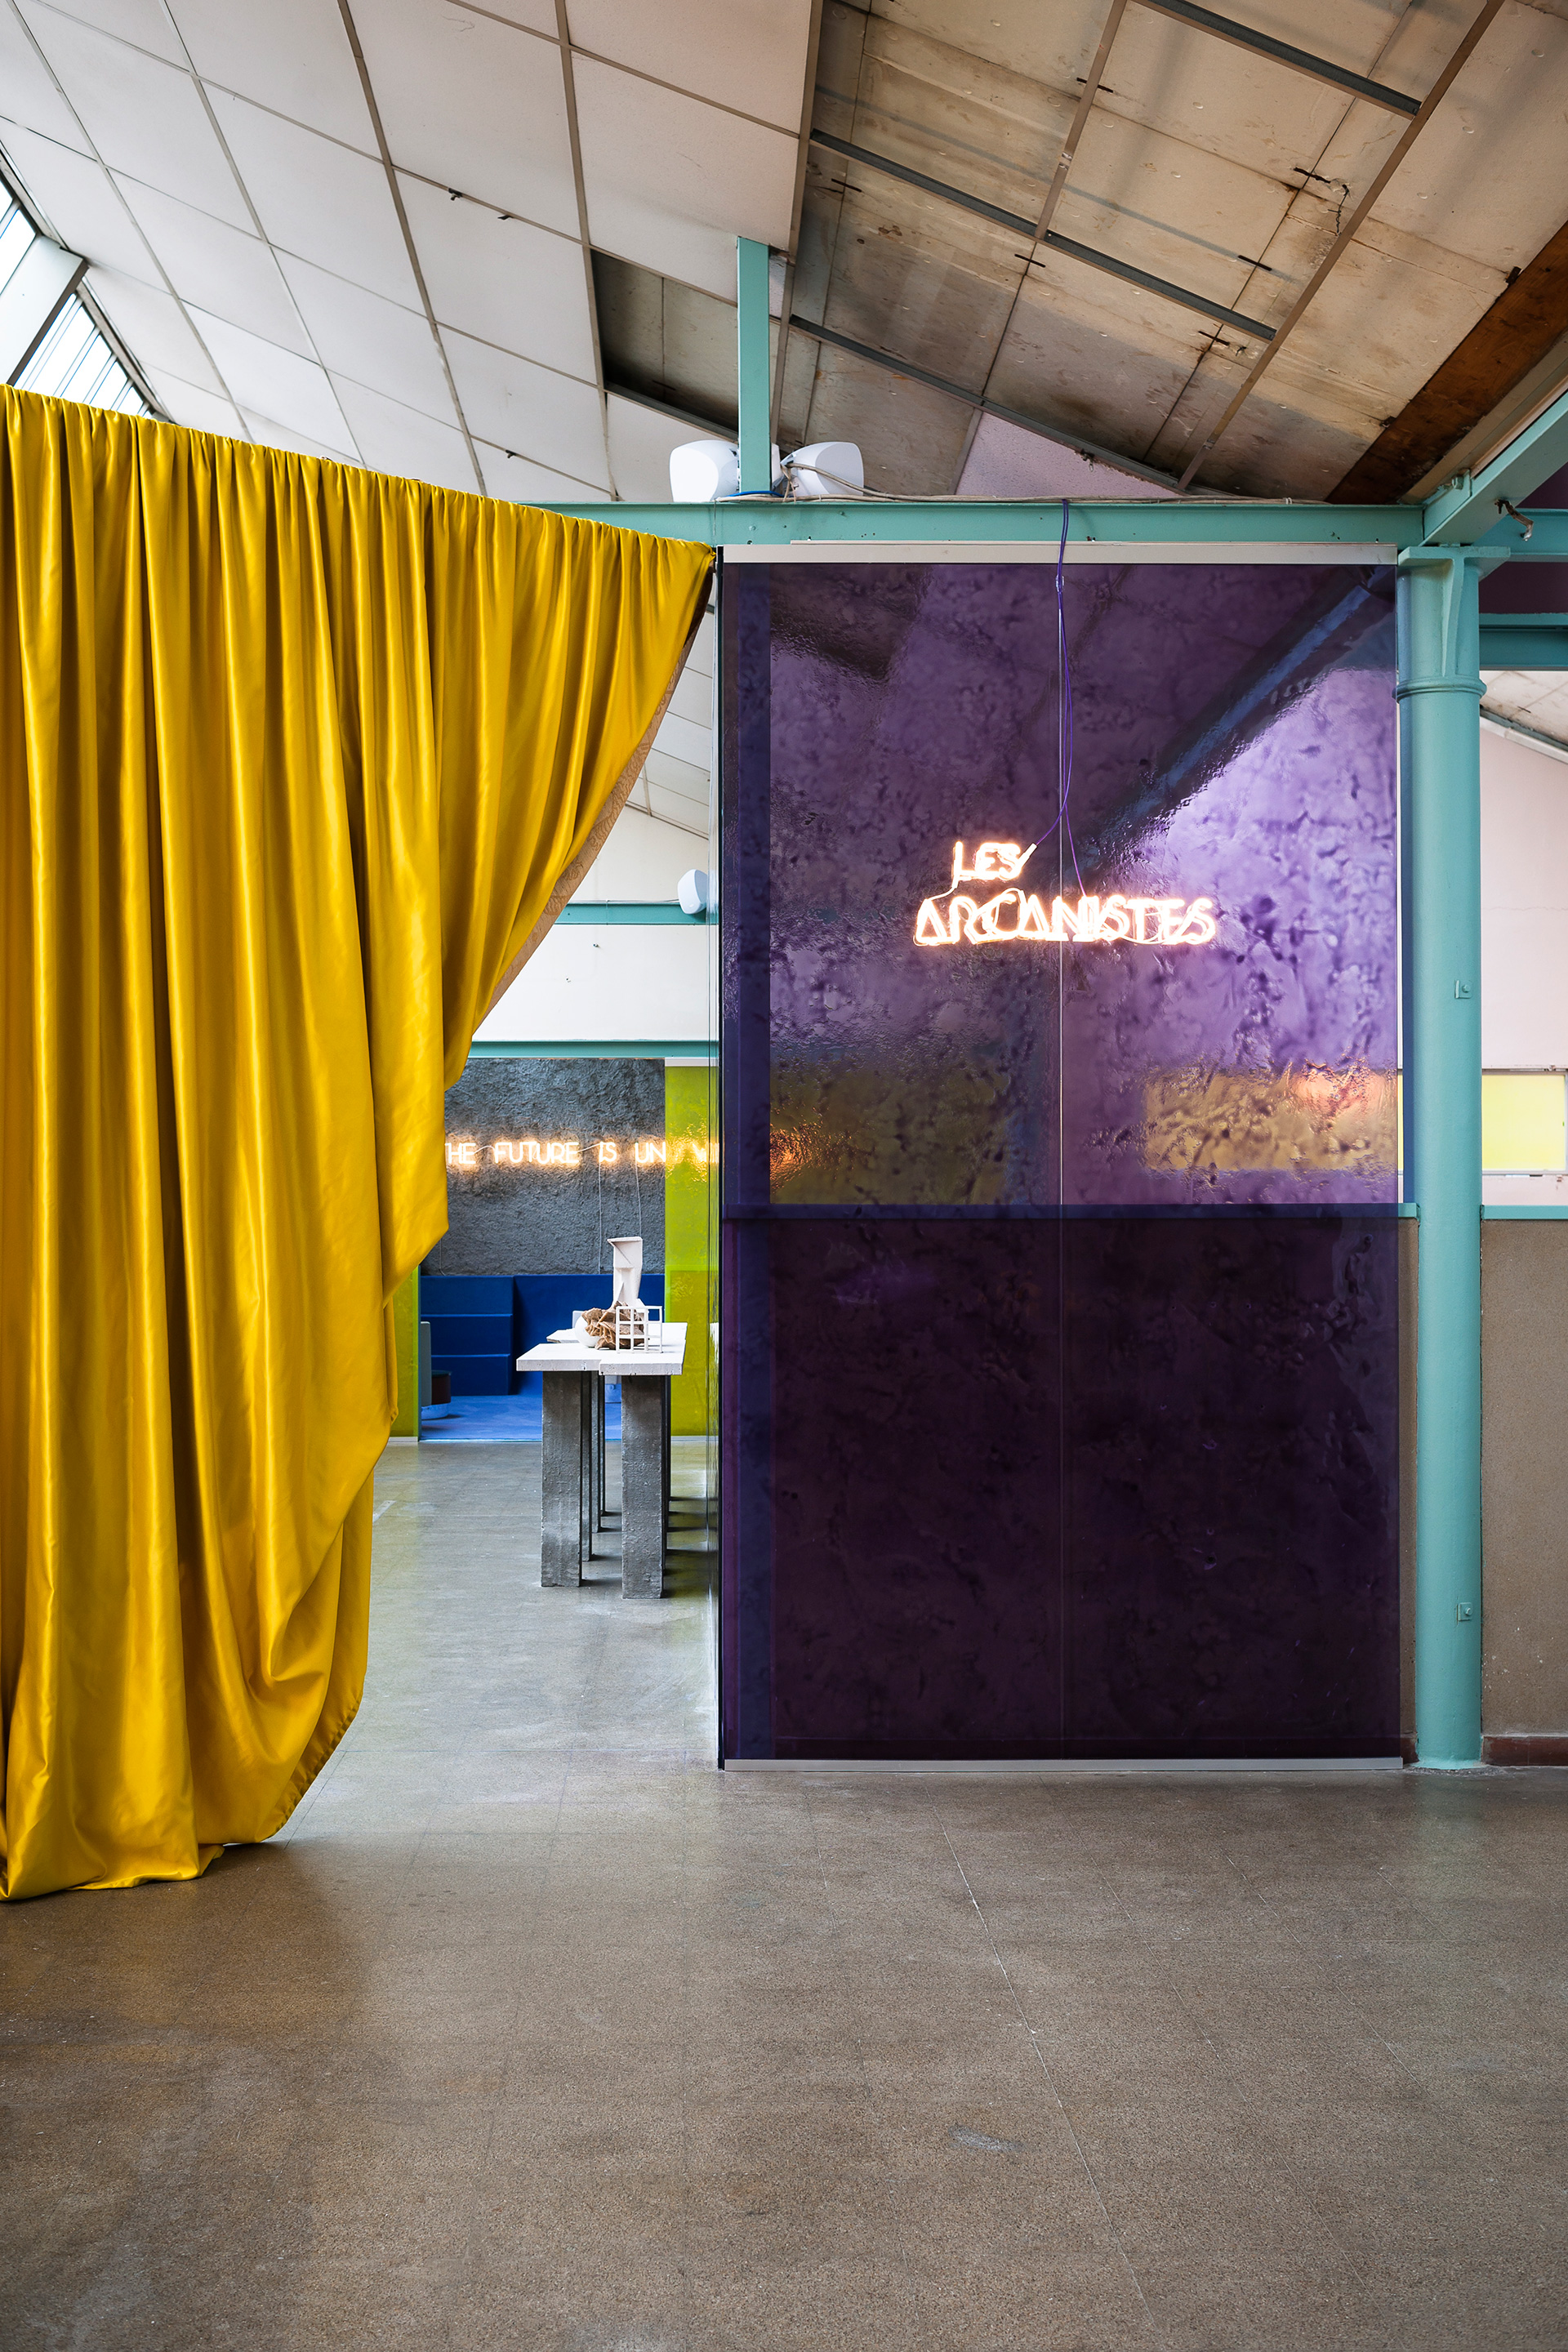 Studiopepe Stages Alchemy Of Materials Through Les Arcanistes